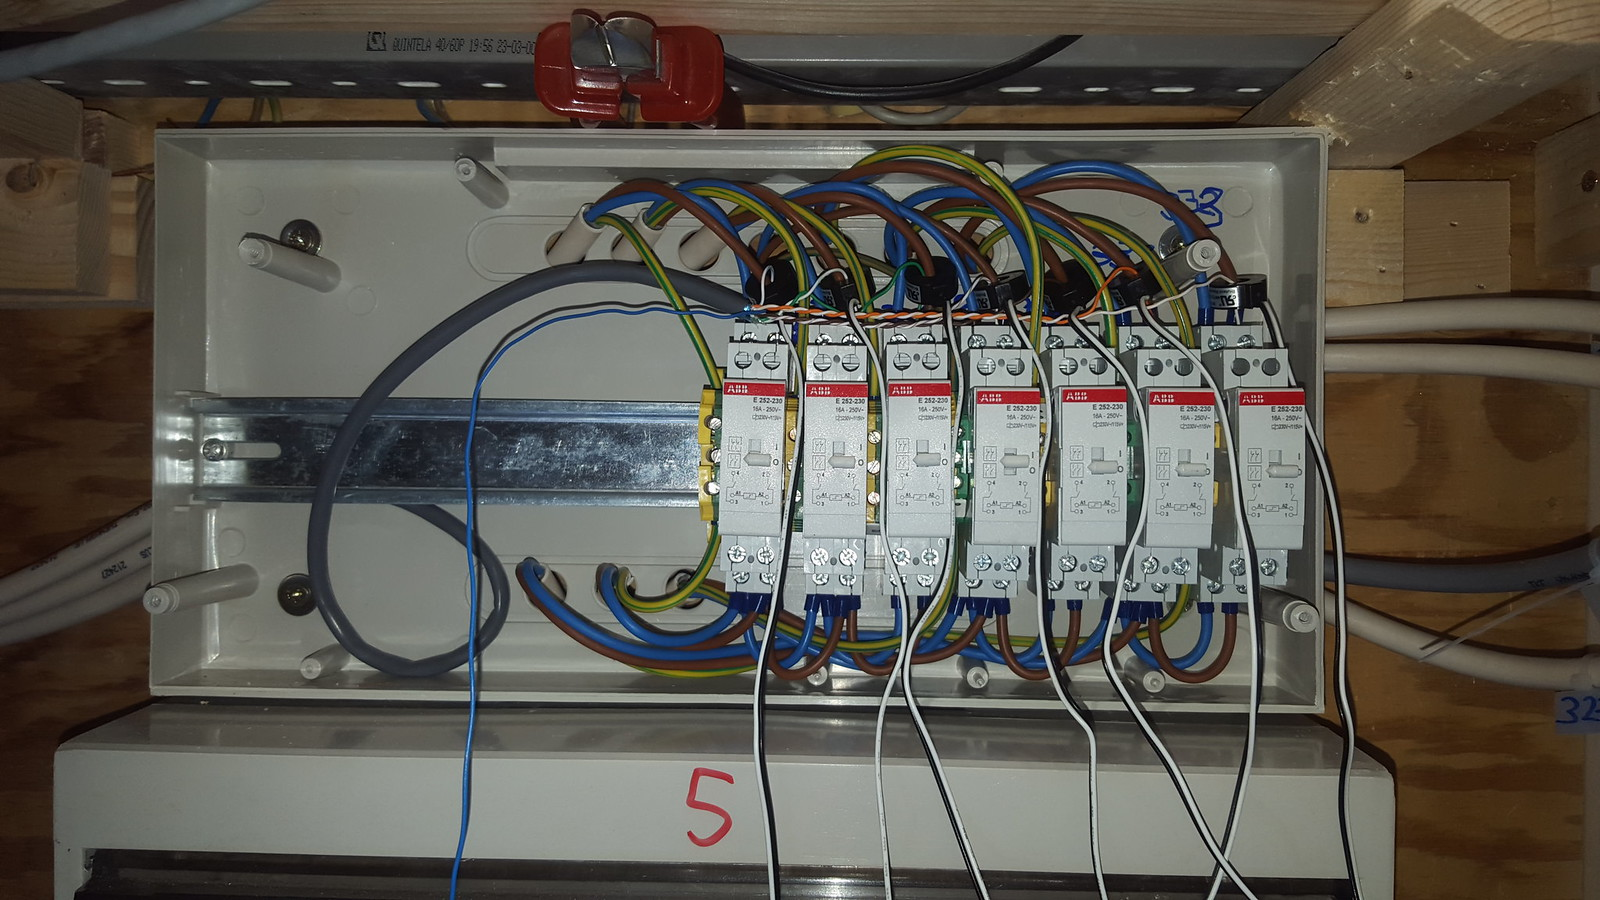 Home Automation Domotica Forum Europe Bwired View Topic Wiring Closet Mess And Some Of The I Made After It Again